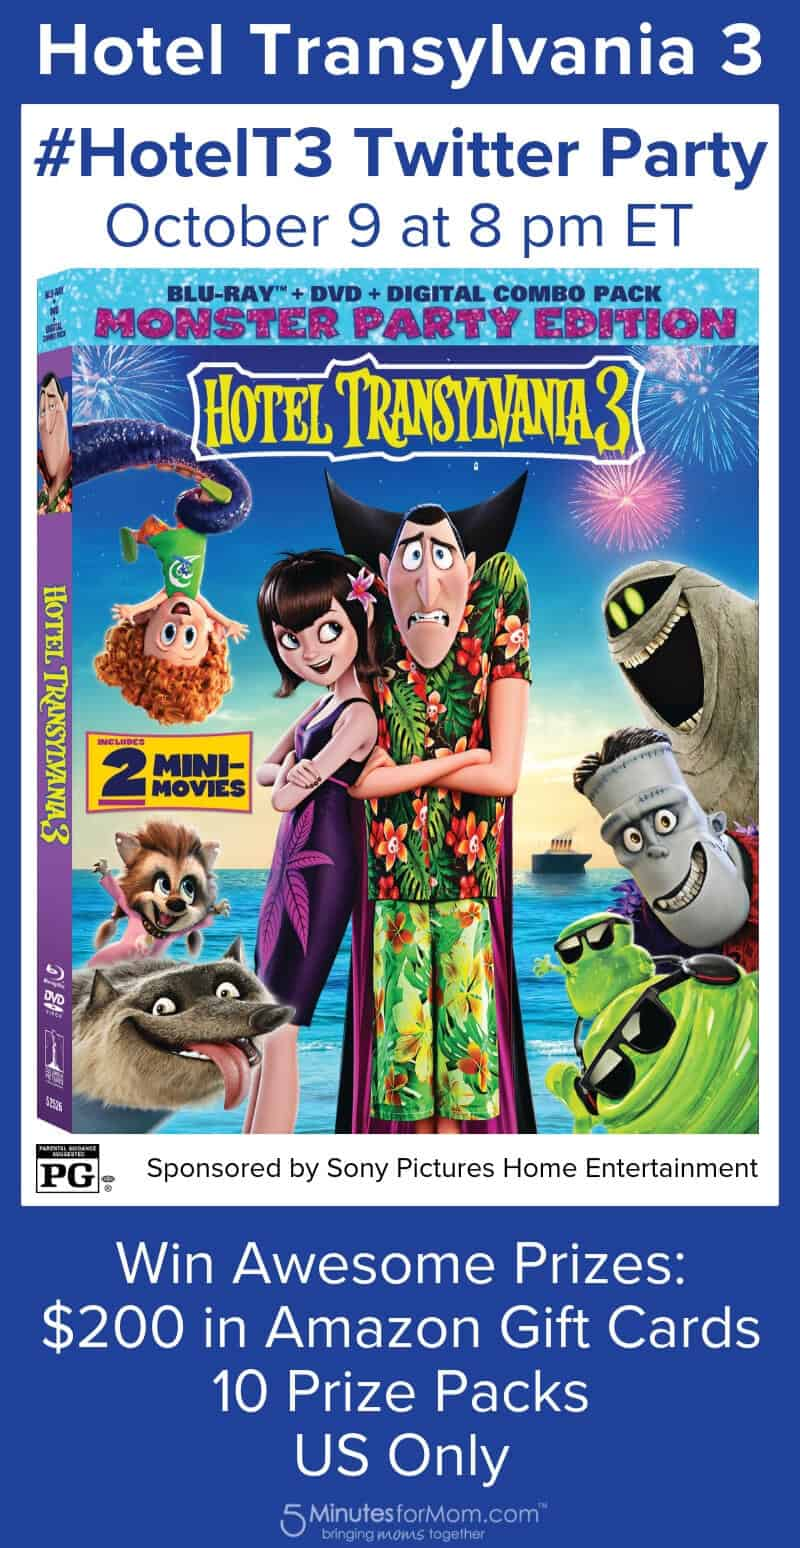 Hotel Transylvania 3 Twitter Party #HotelT3 Chat